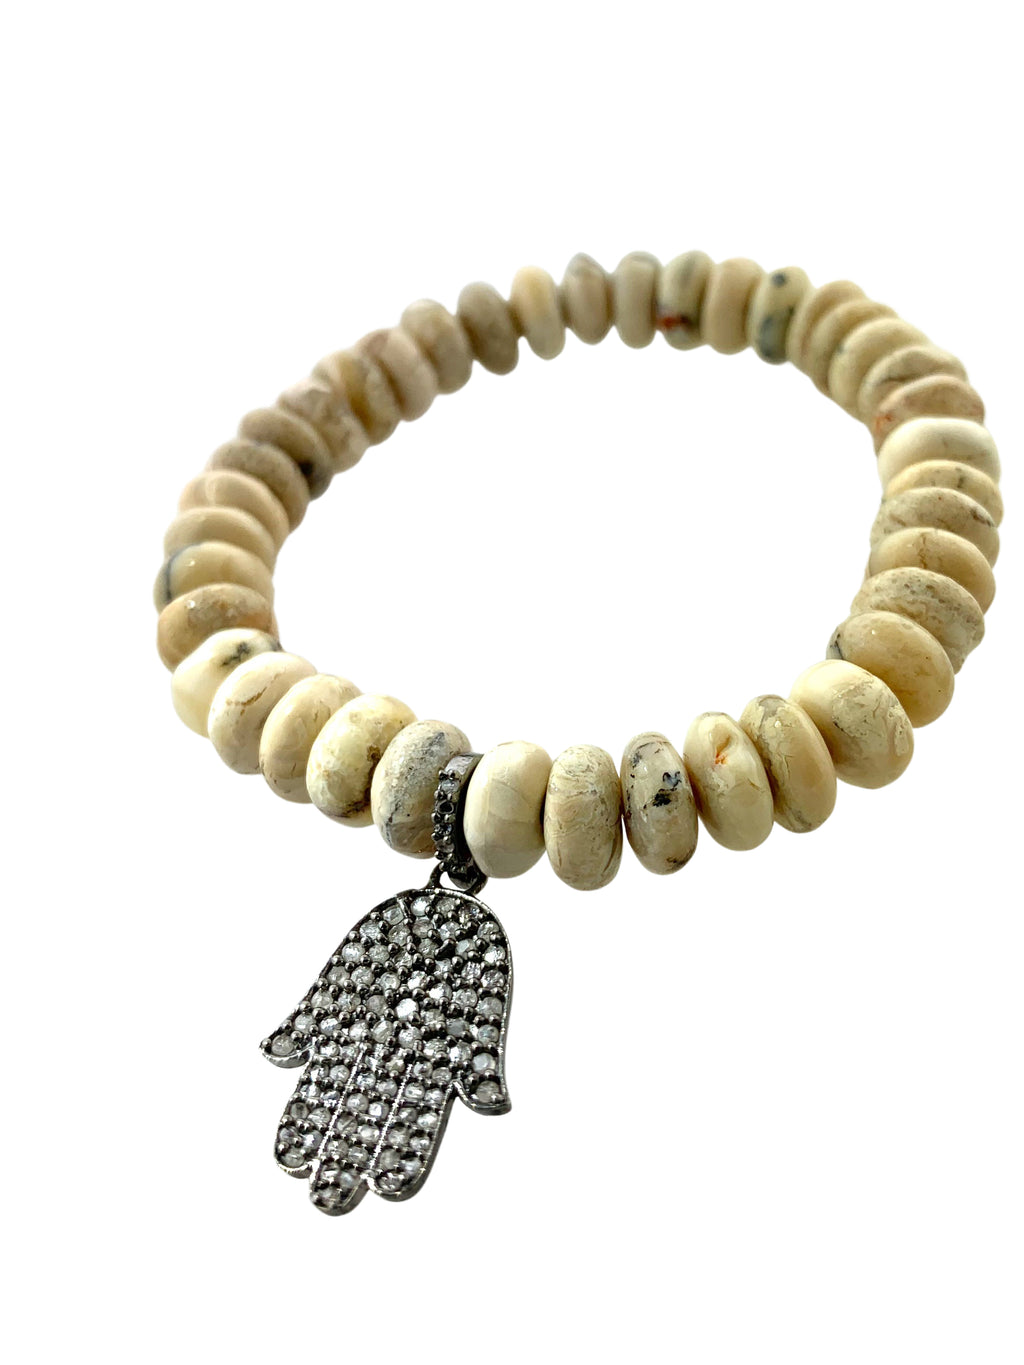 Pave Diamond Hamsa set in Sterling Silver on Jasper